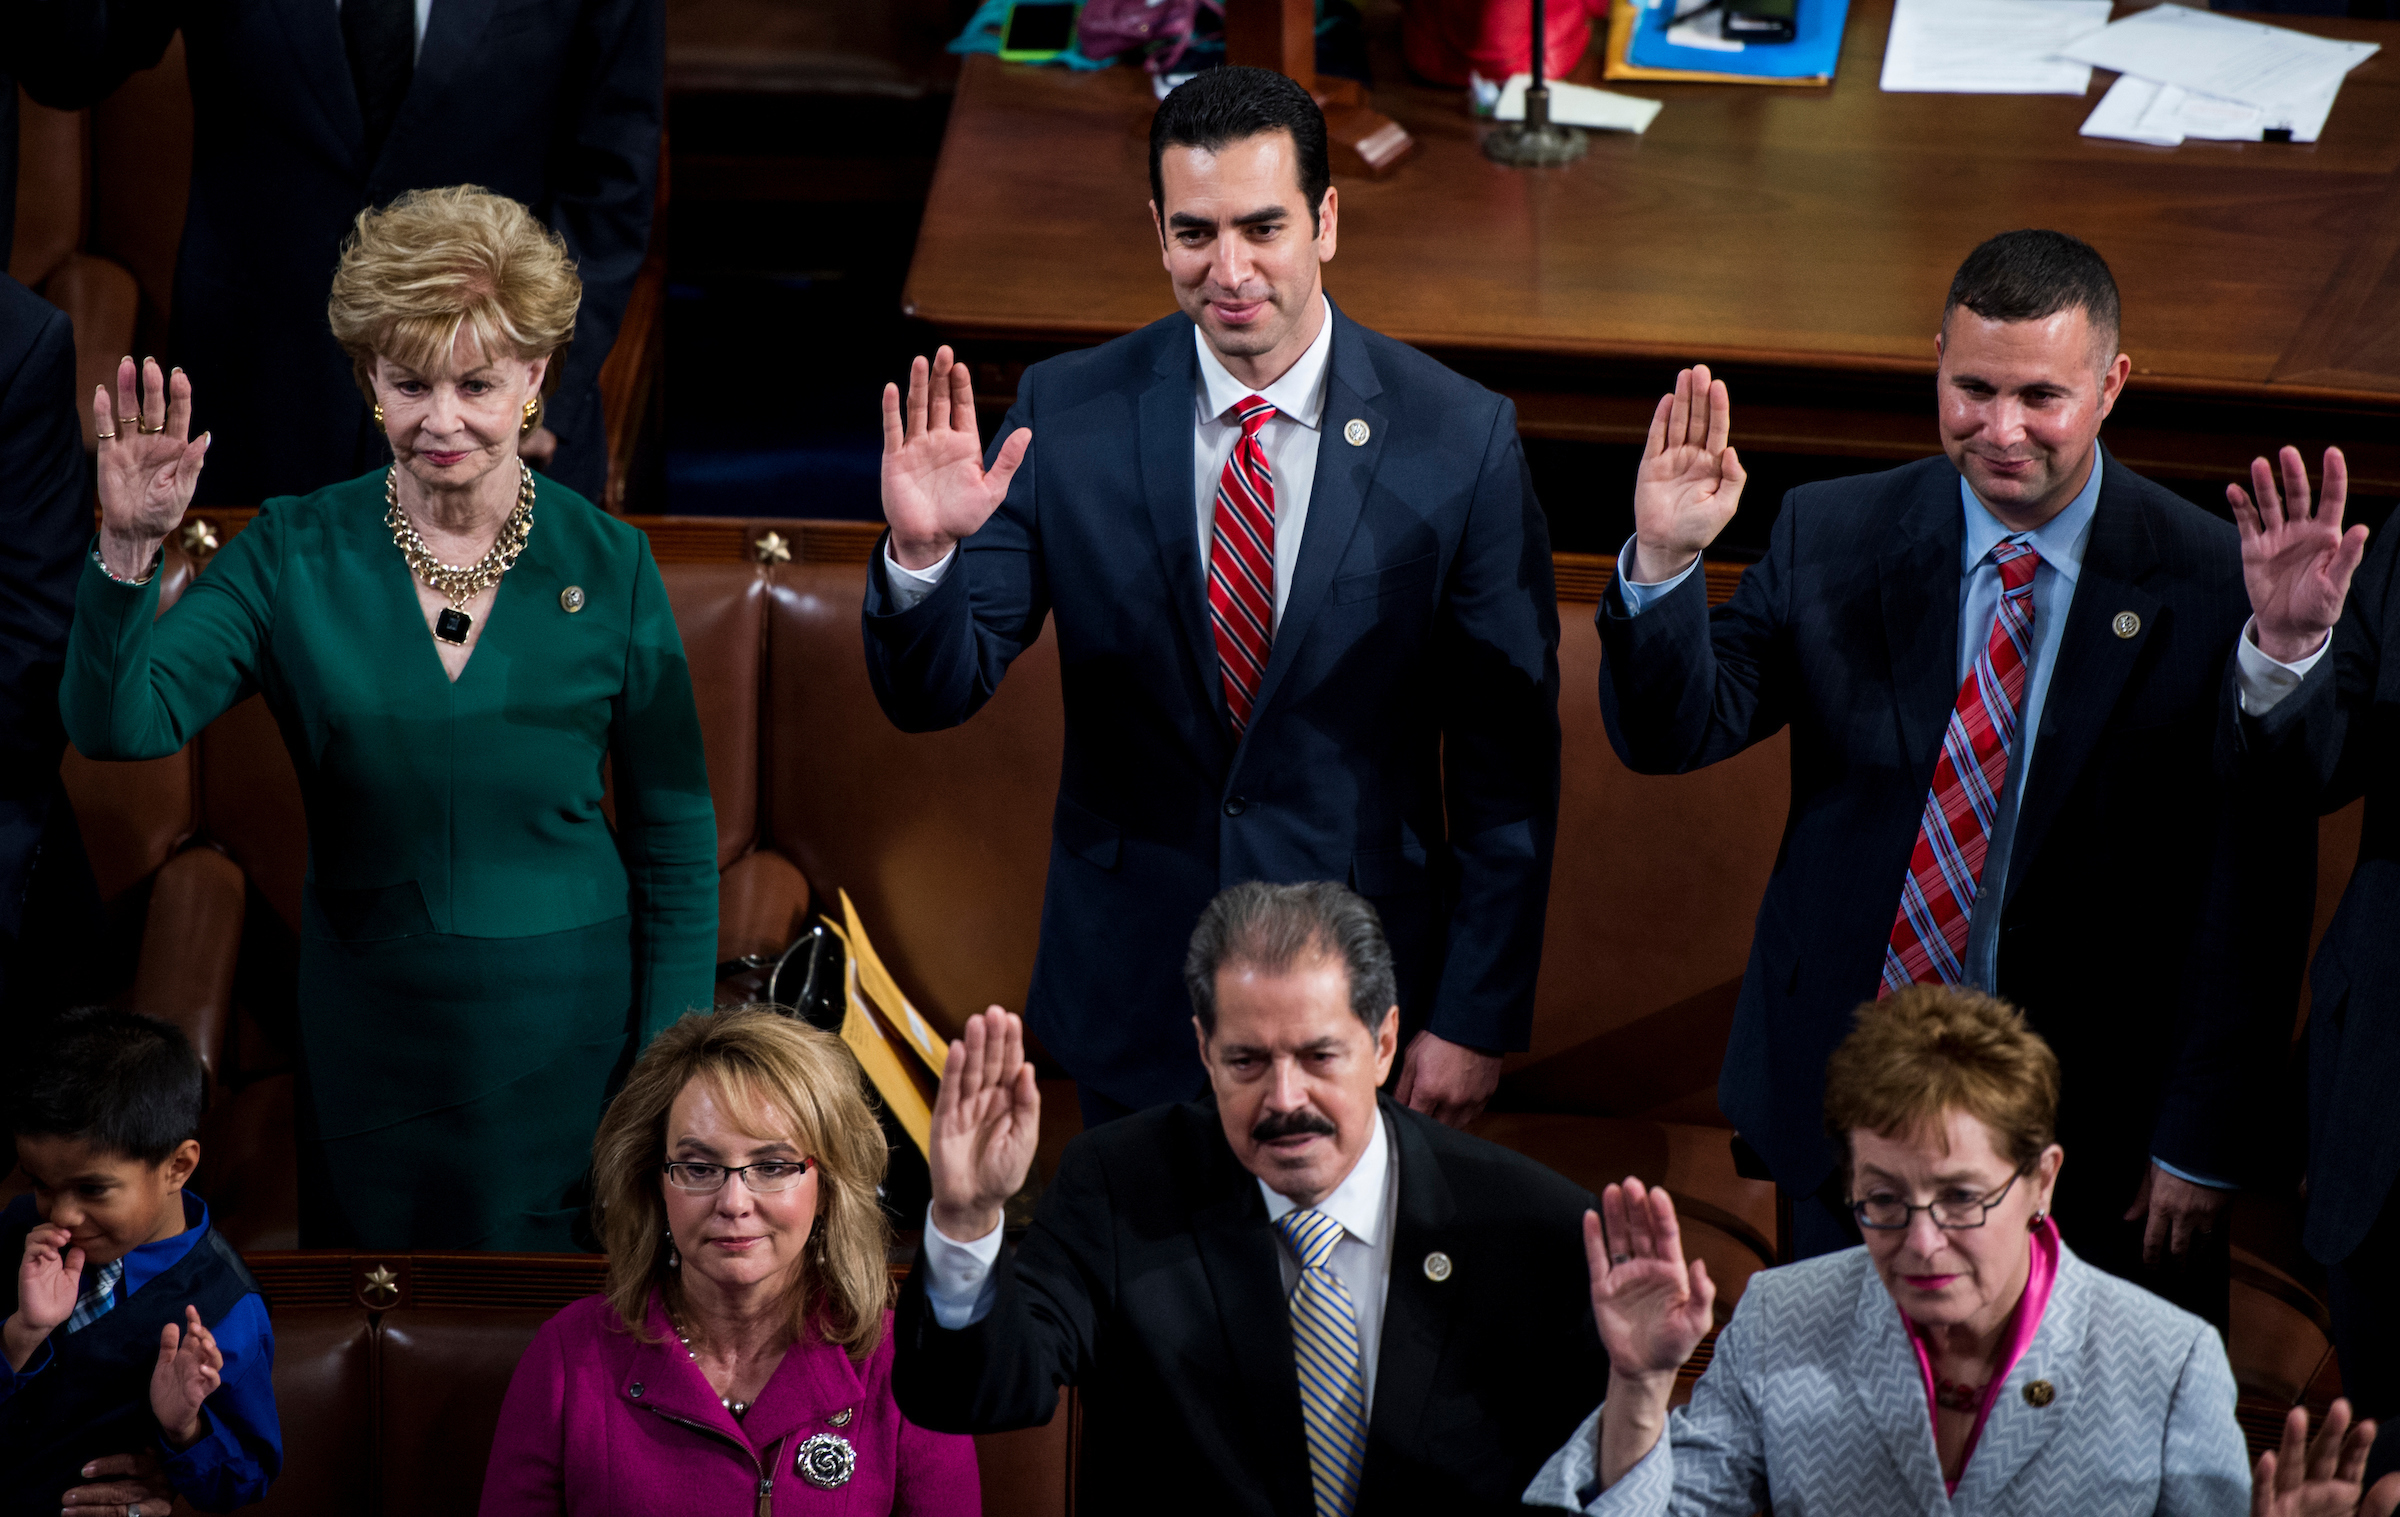 UNITED STATES - JANUARY 3: From left, Del. Madeleine Bordallo, D-Guam, former Rep. Gabby Giffords, D-Ariz., Rep. Ruben Kihuen, D-Nev., Rep. Jose Serrano, D-N.Y., Rep. Darren Soto, D-Fla., and Rep. Marcy Kaptur, D-Ohio, participate in the swearing-in of the 115th Congress on the House floor on Tuesday, Jan. 3, 2017. (Photo By Bill Clark/CQ Roll Call)